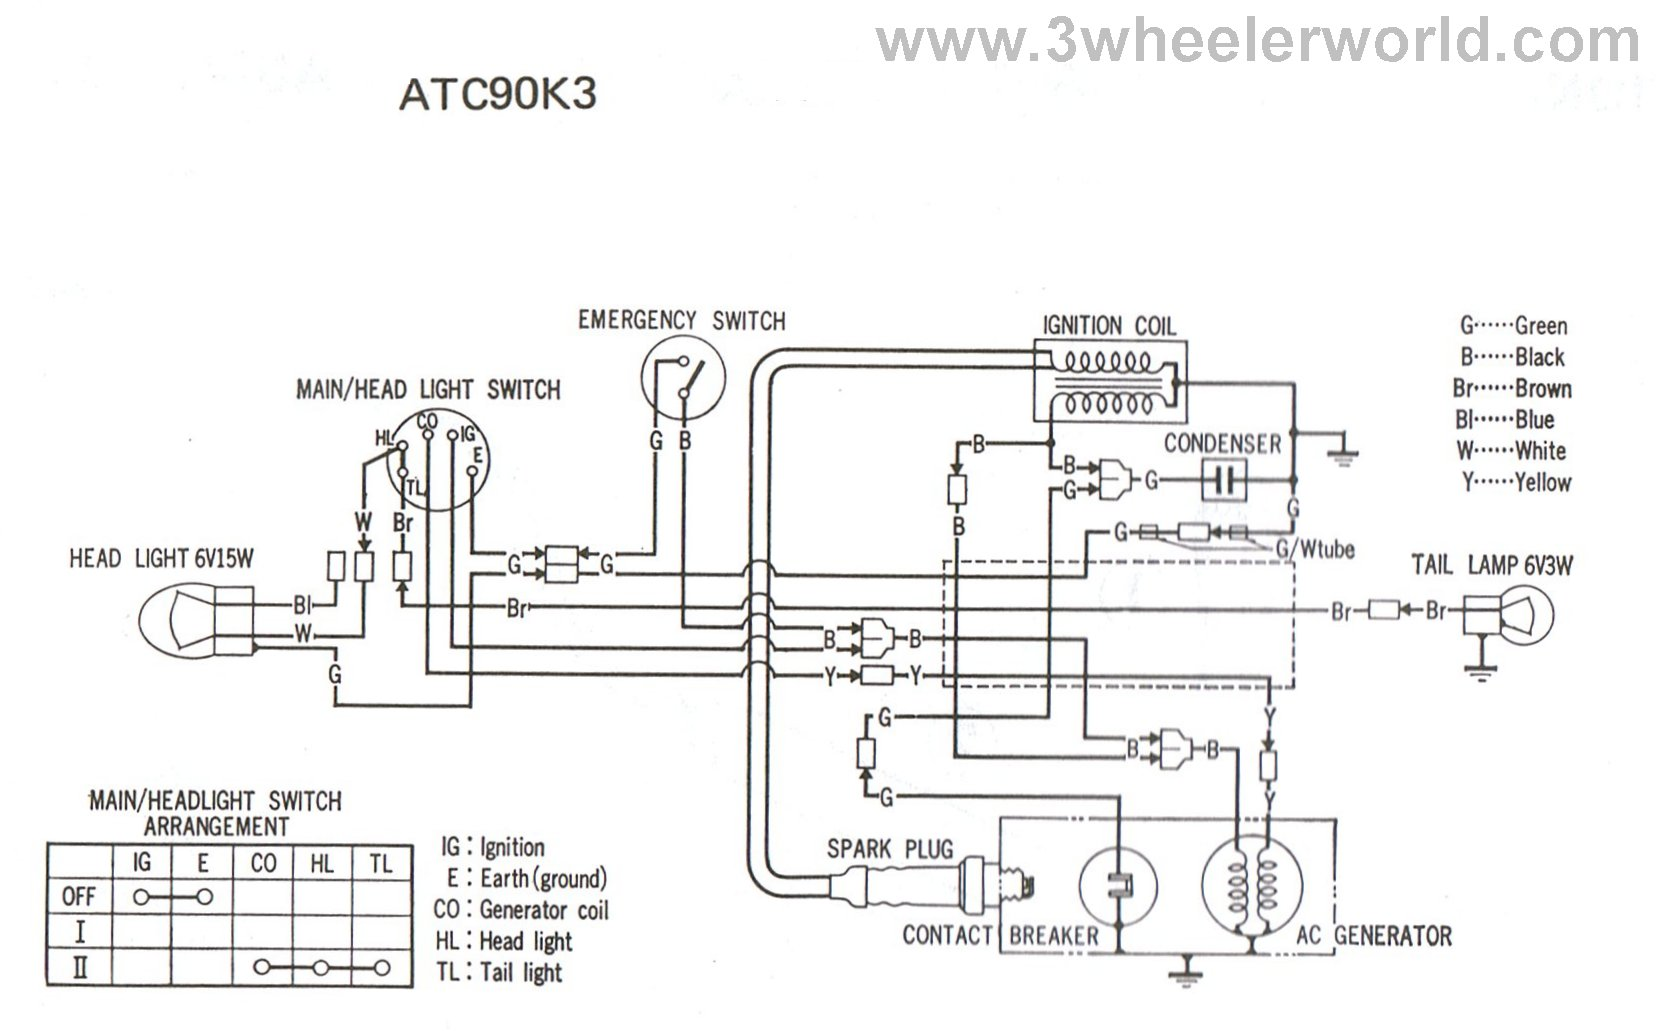 ATC90K3HM 3 wheeler world tech help honda wiring diagrams 1995 honda fourtrax 300 wiring diagram at crackthecode.co